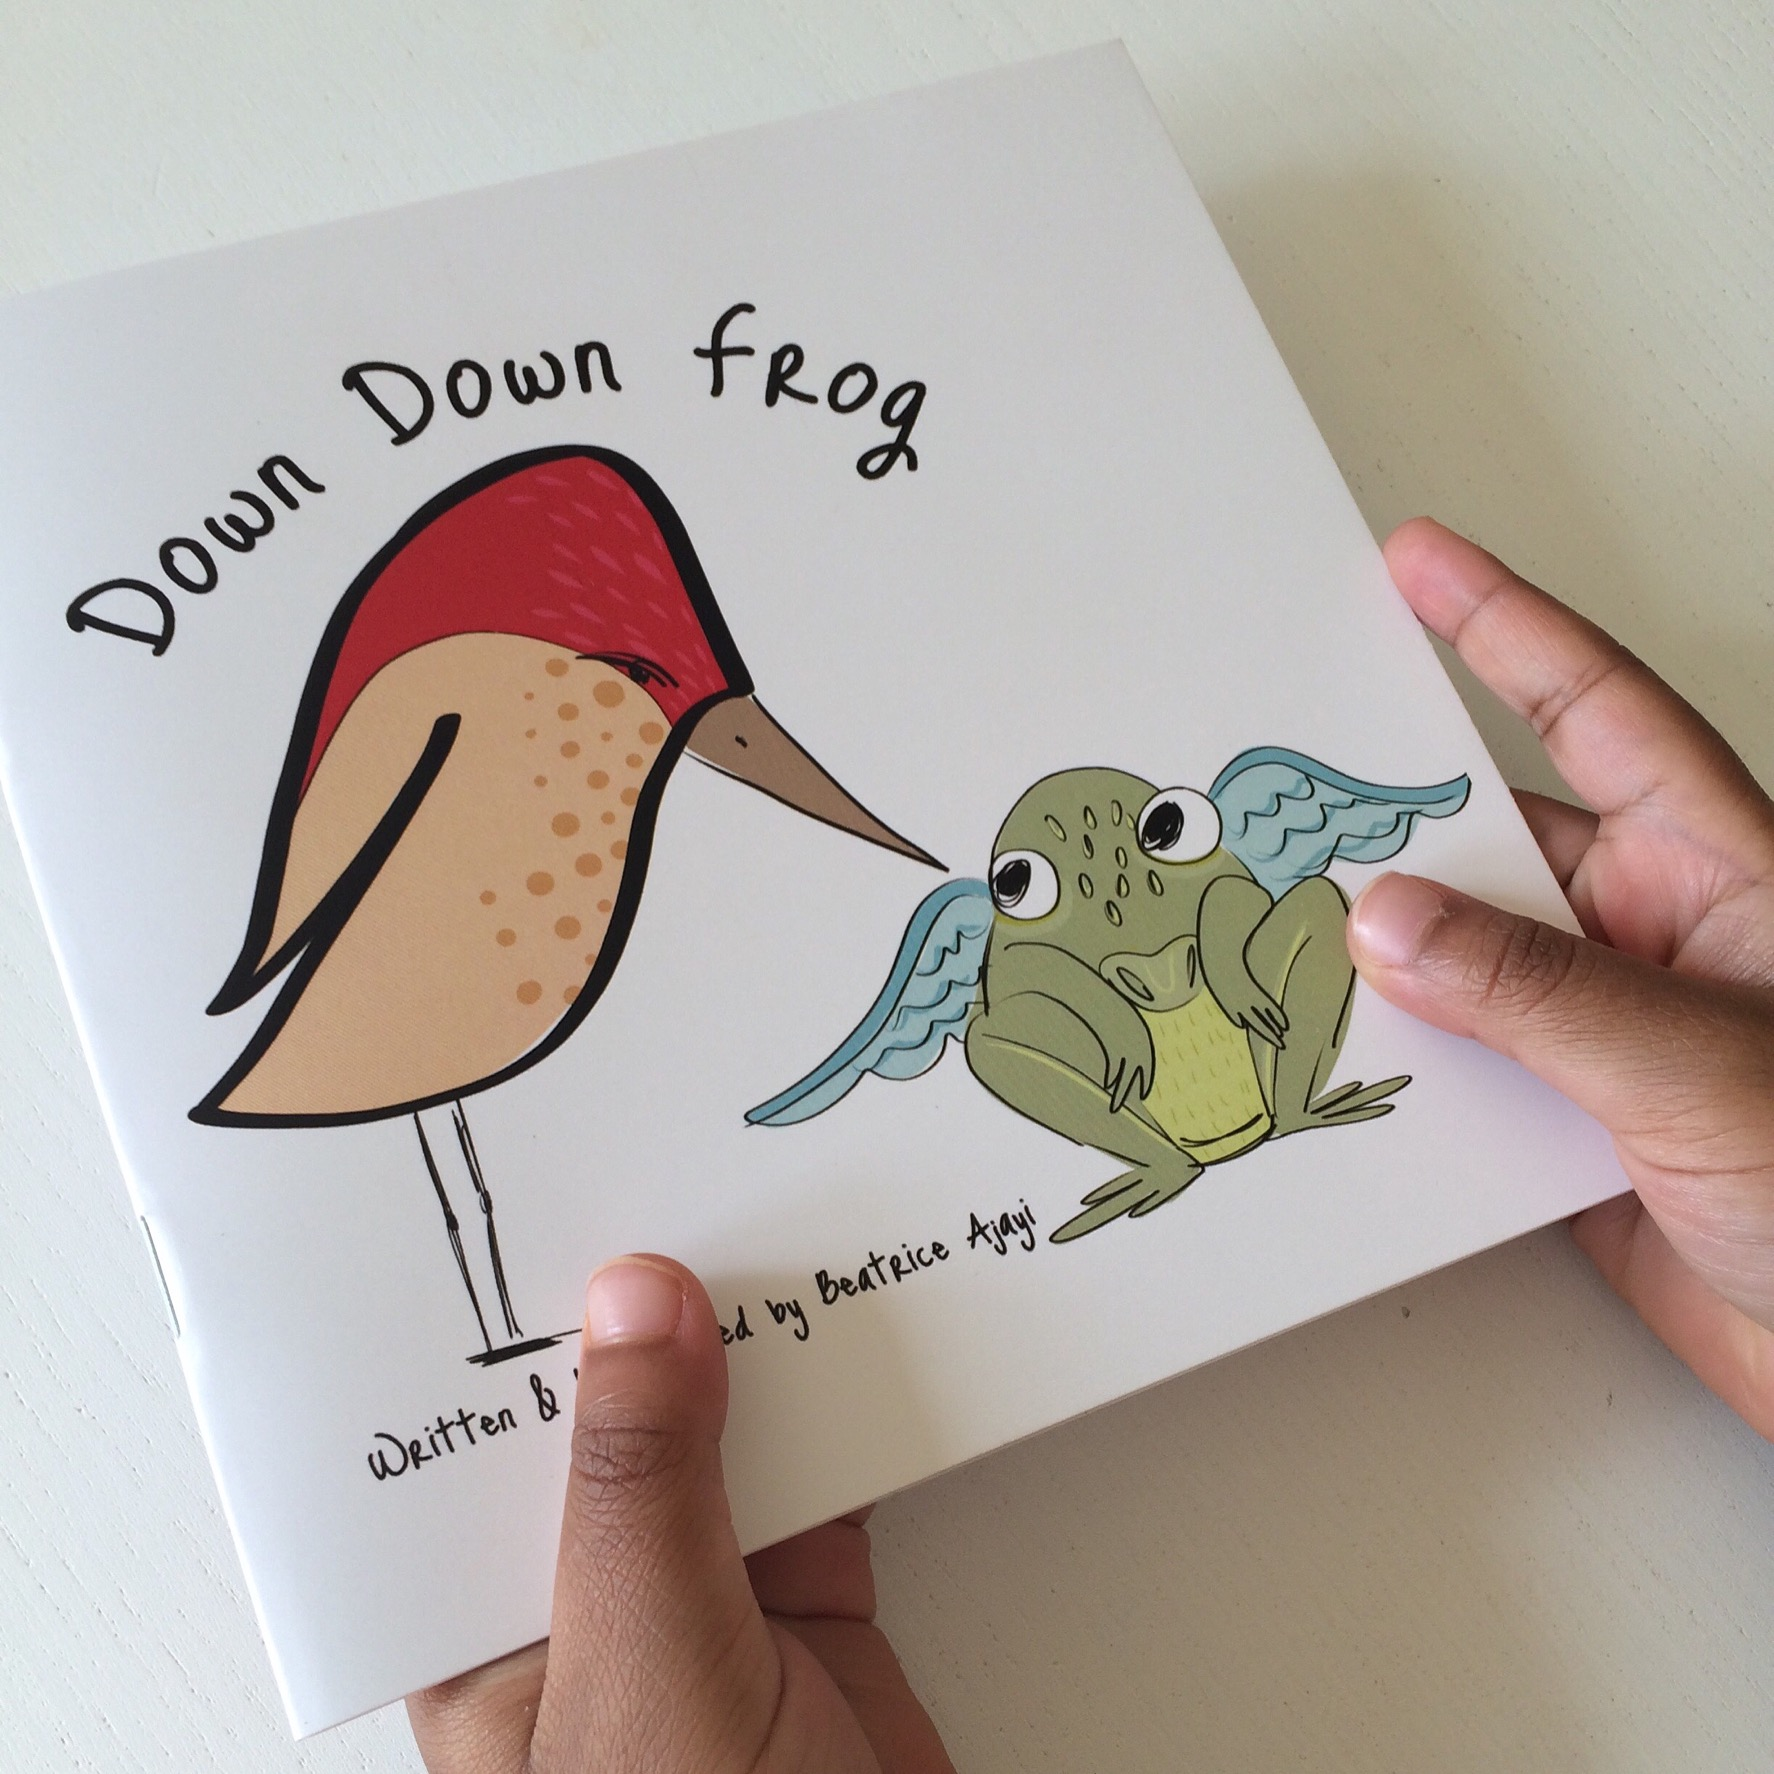 Down Down Frog